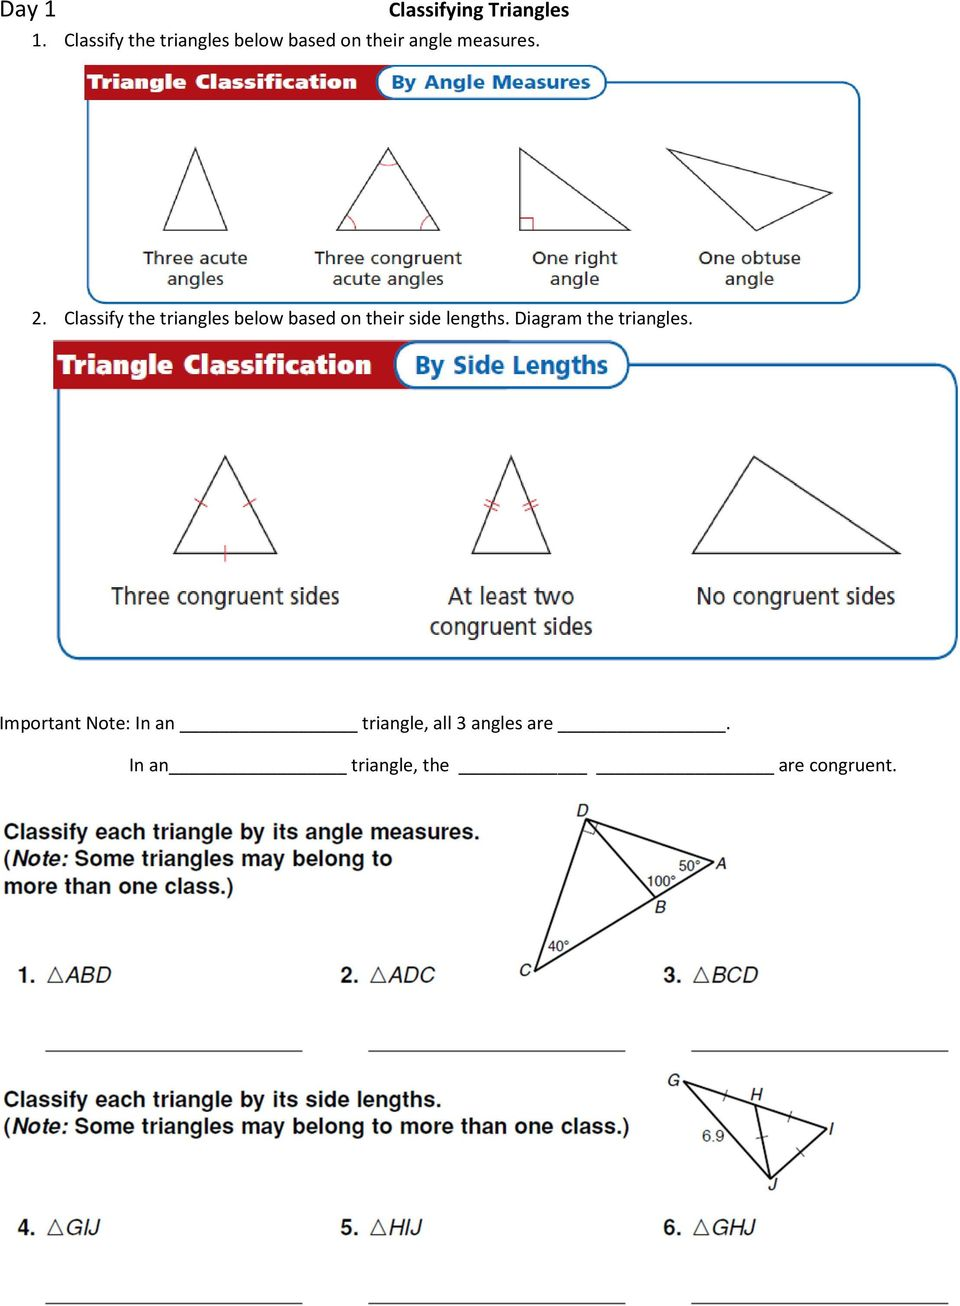 Classify the triangles below based on their side lengths.